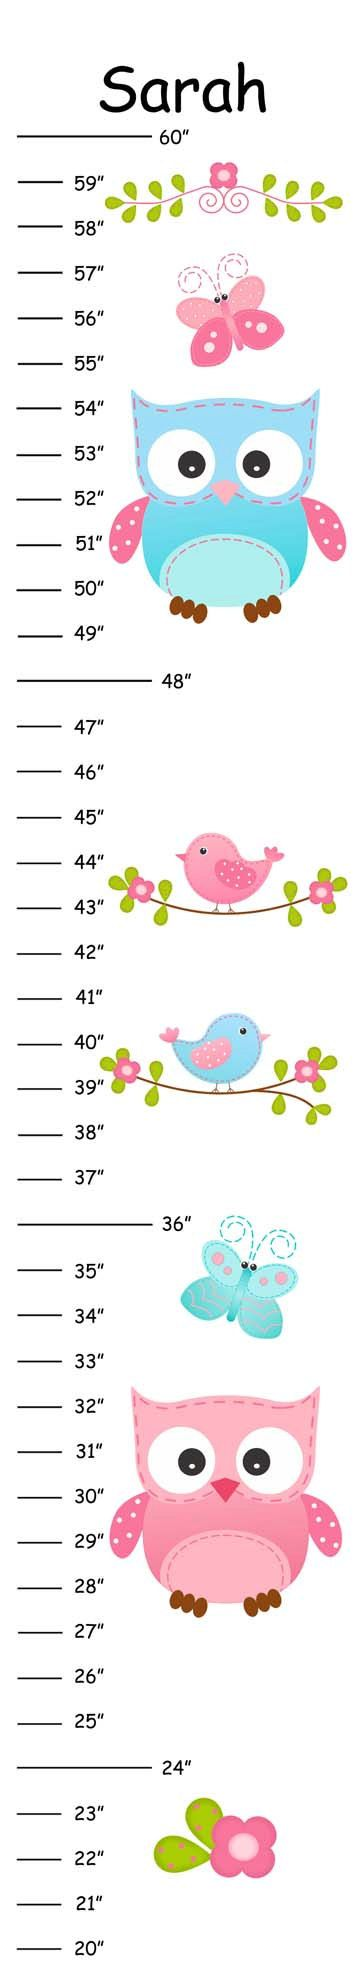 Personalized Pink & Blue Owls and Birds Canvas Growth Chart